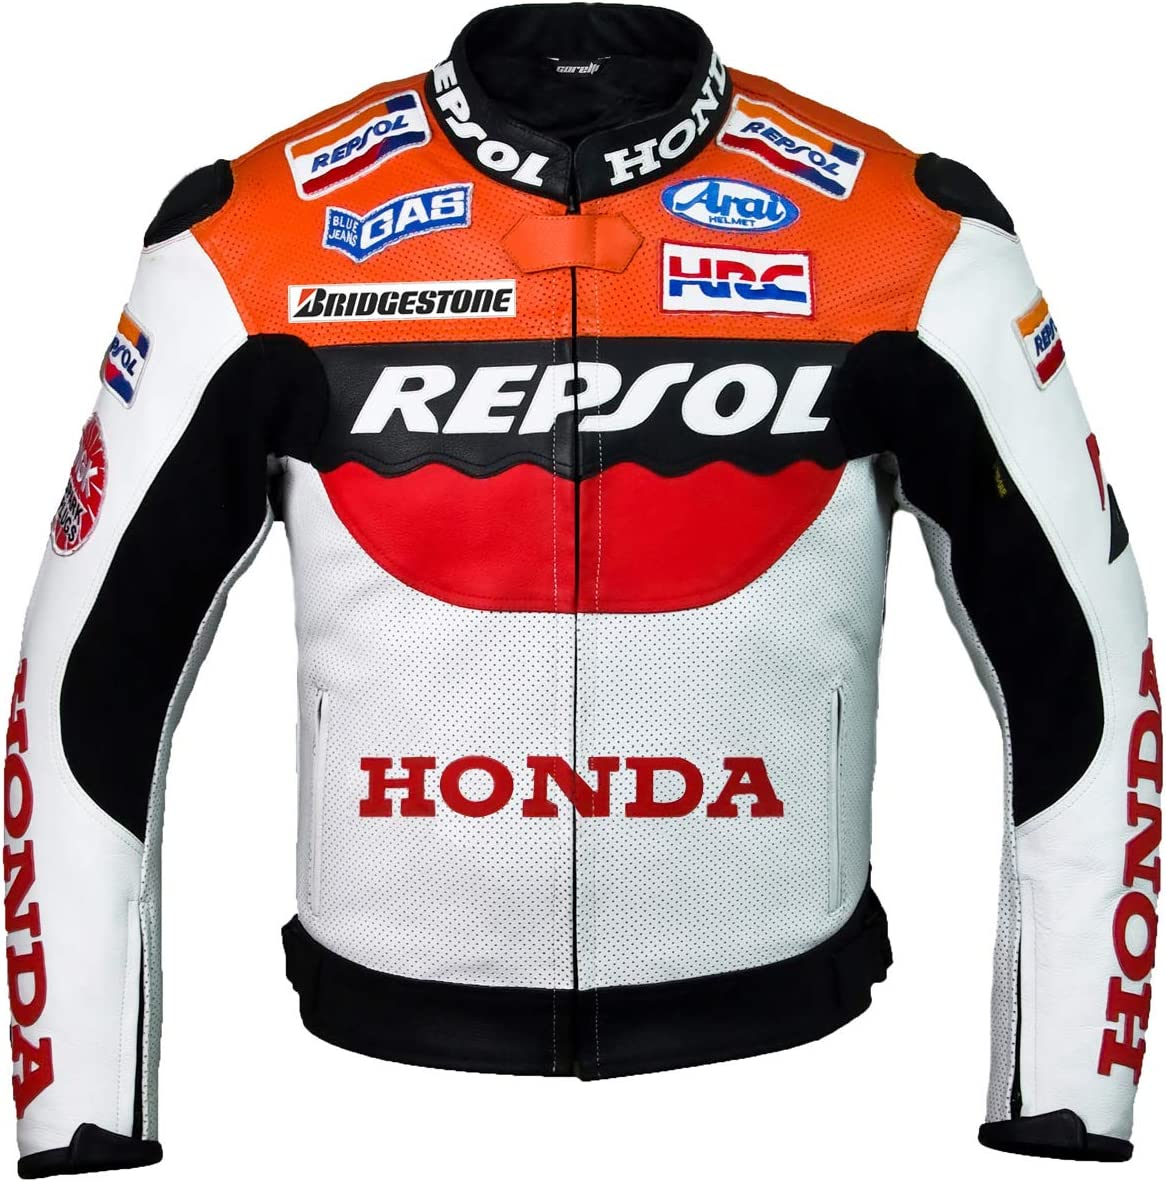 Complete Free Shipping Repsol Team Miami Mall Racing Leather Jacket M hump EU50 without a